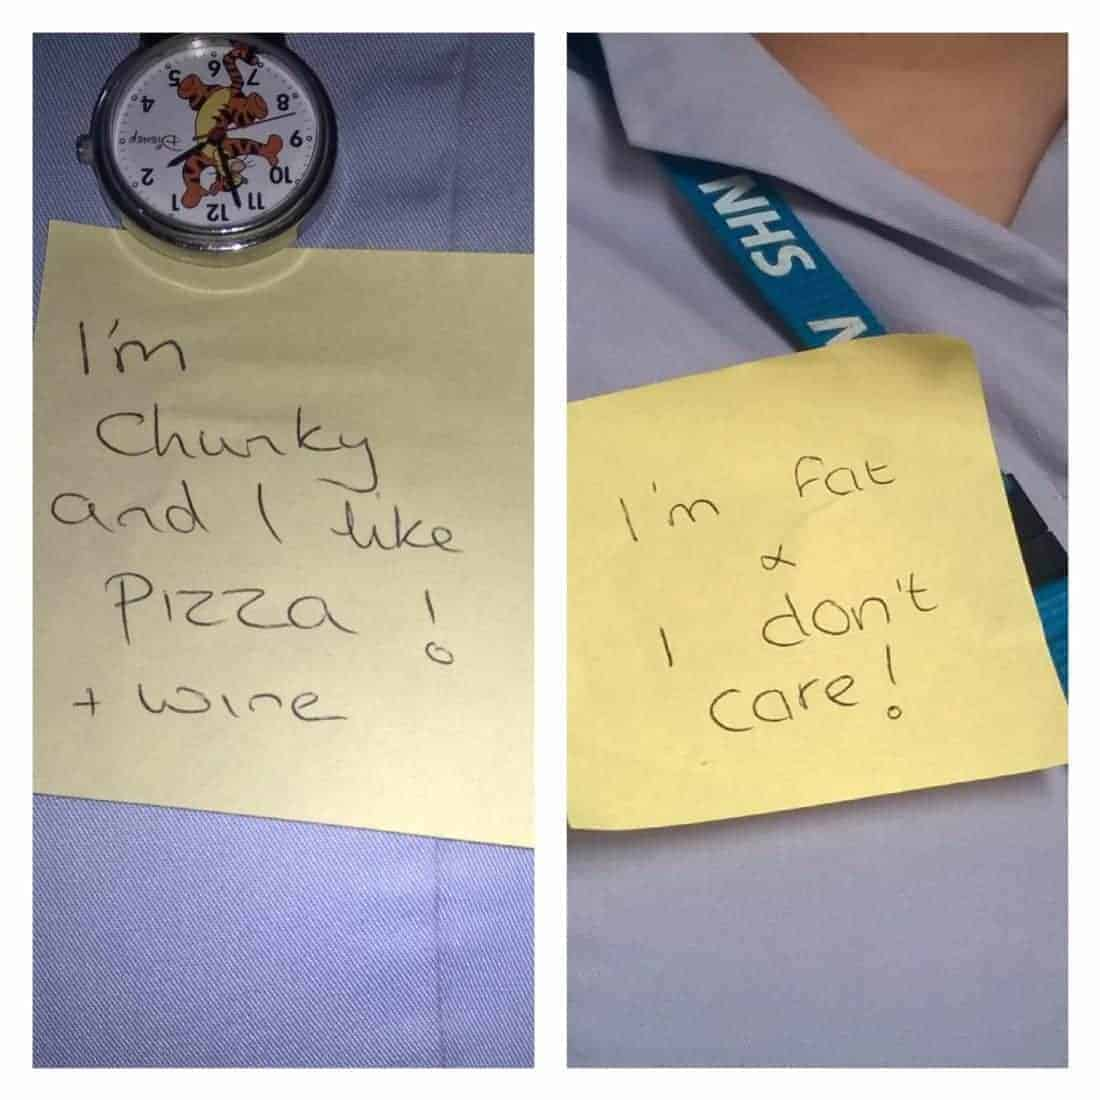 Overweight Nurses Should Wear a Badge says Expert